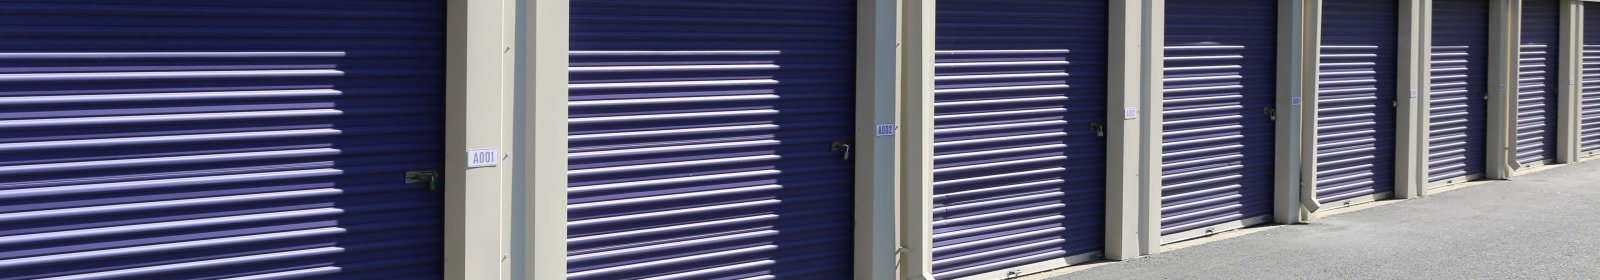 Midgard Self Storage features in Melbourne, Florida